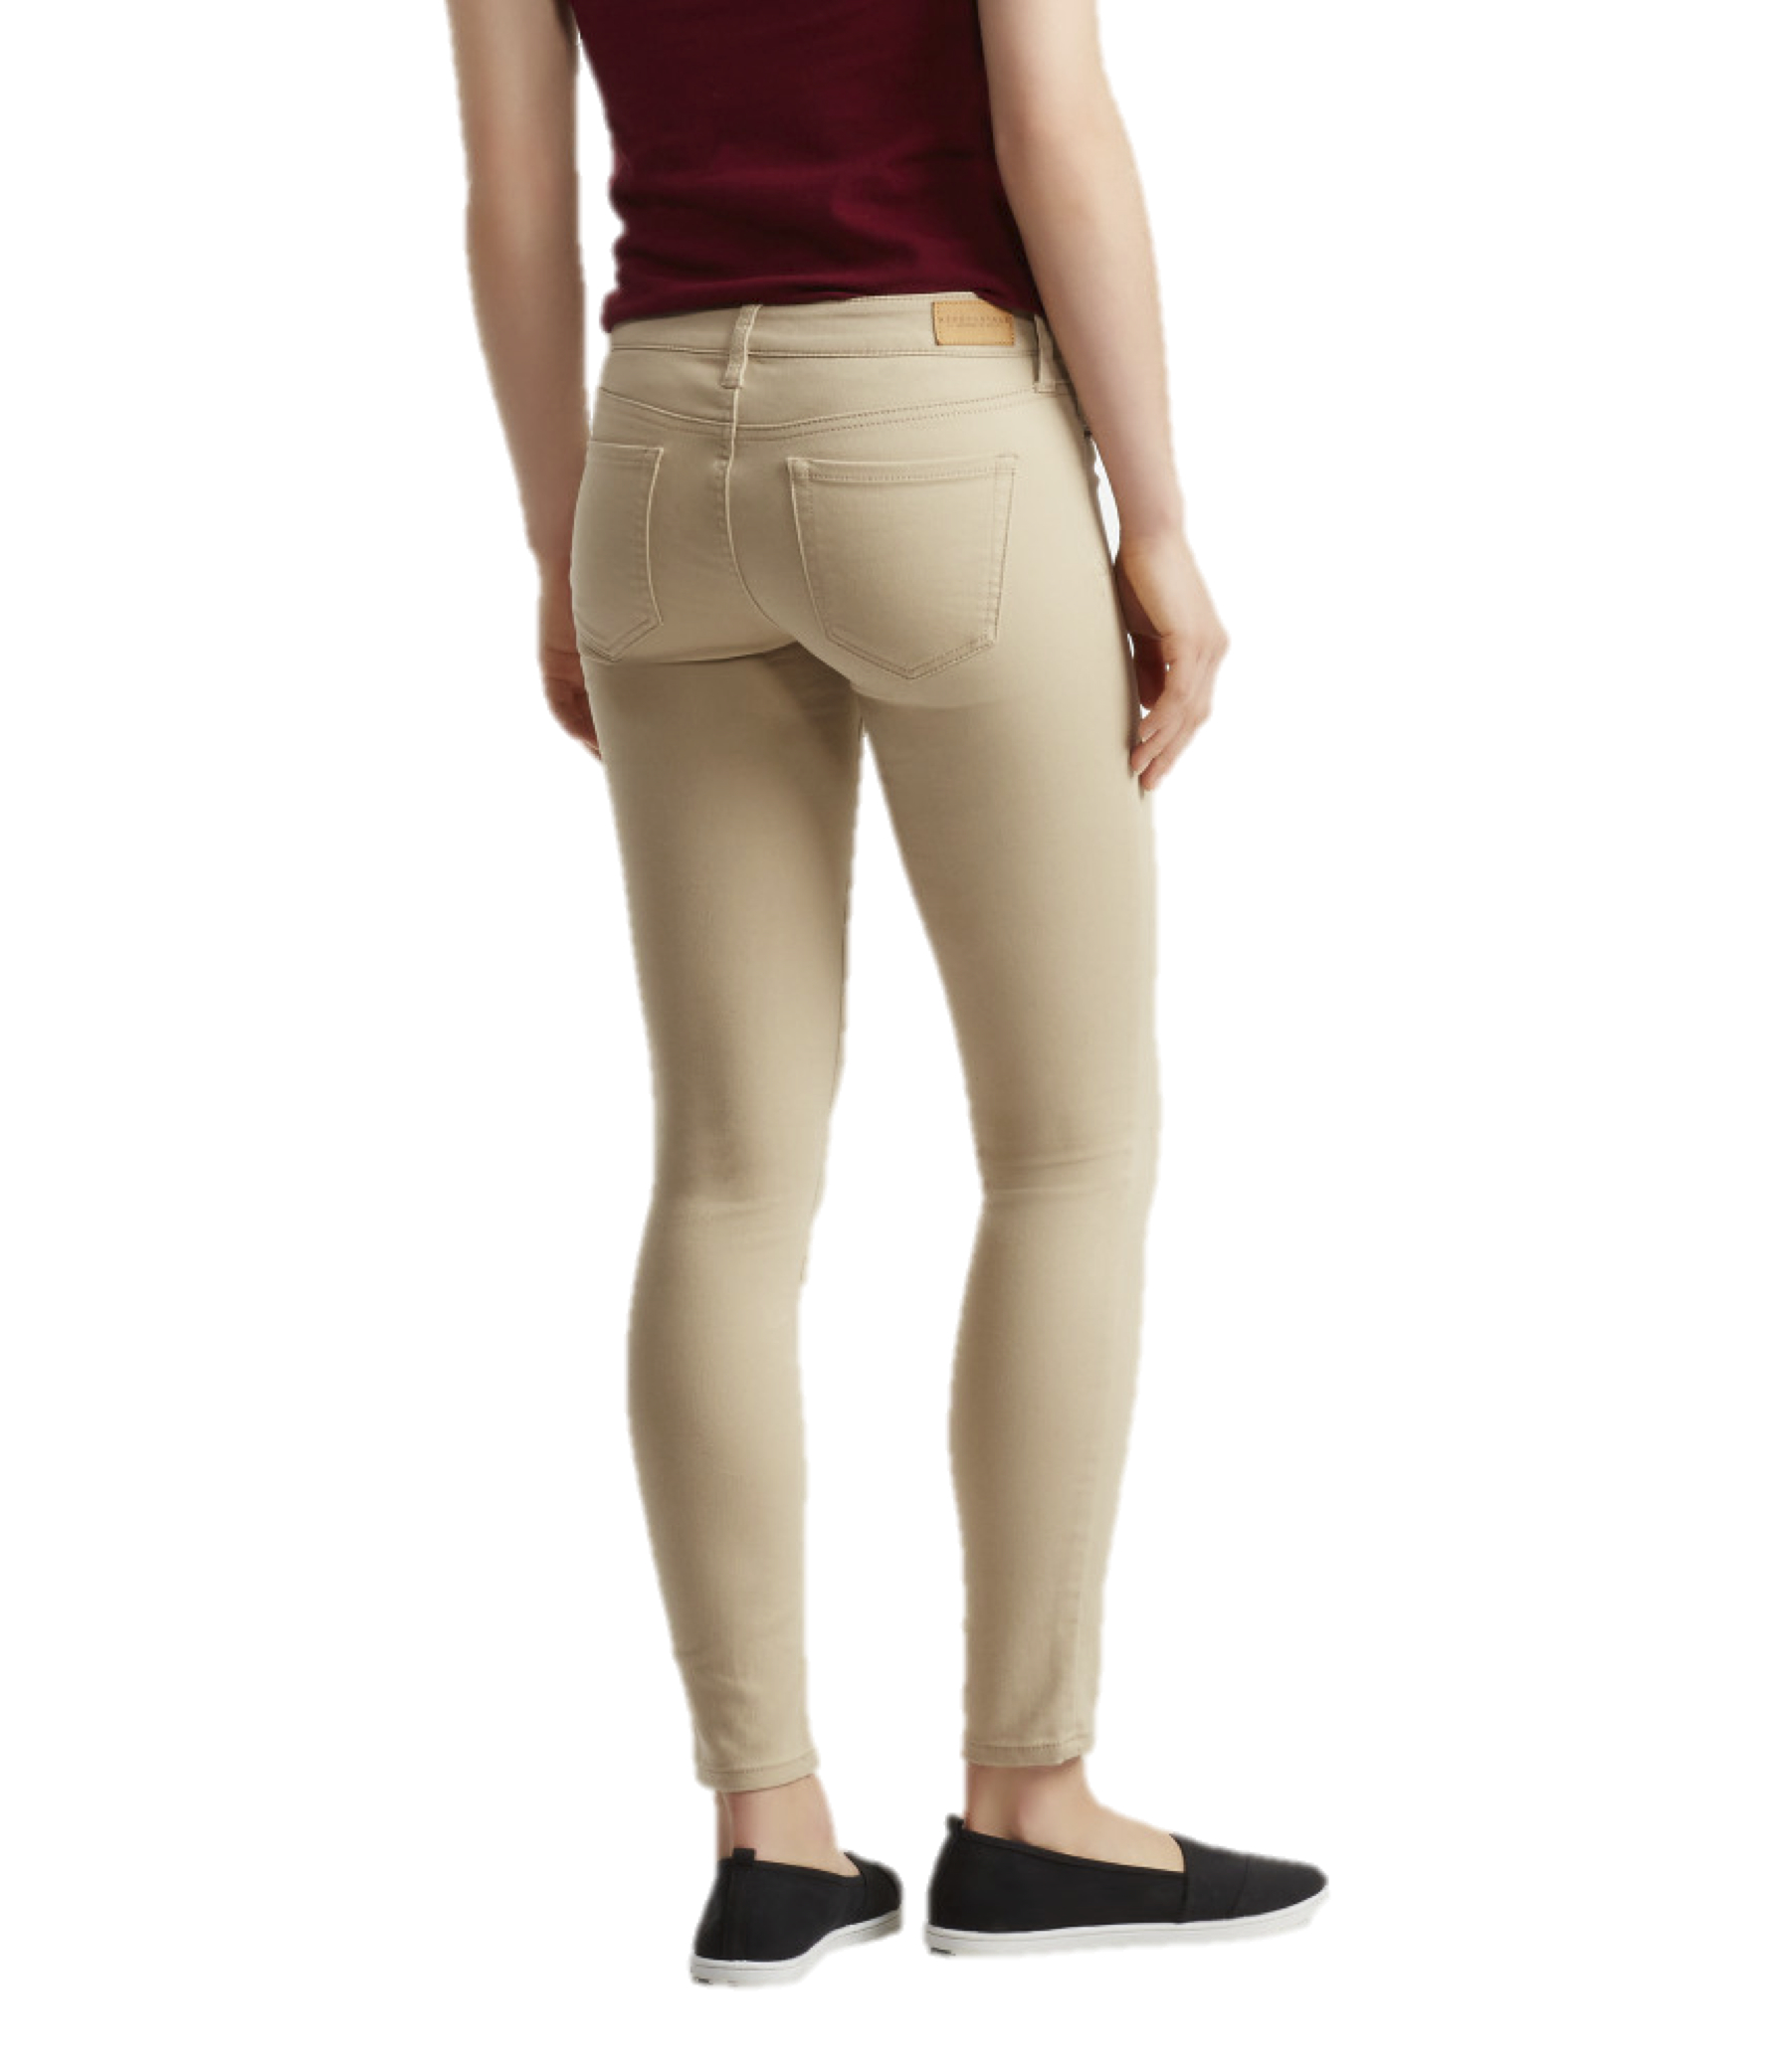 HD wallpapers plus size womens dickies pants